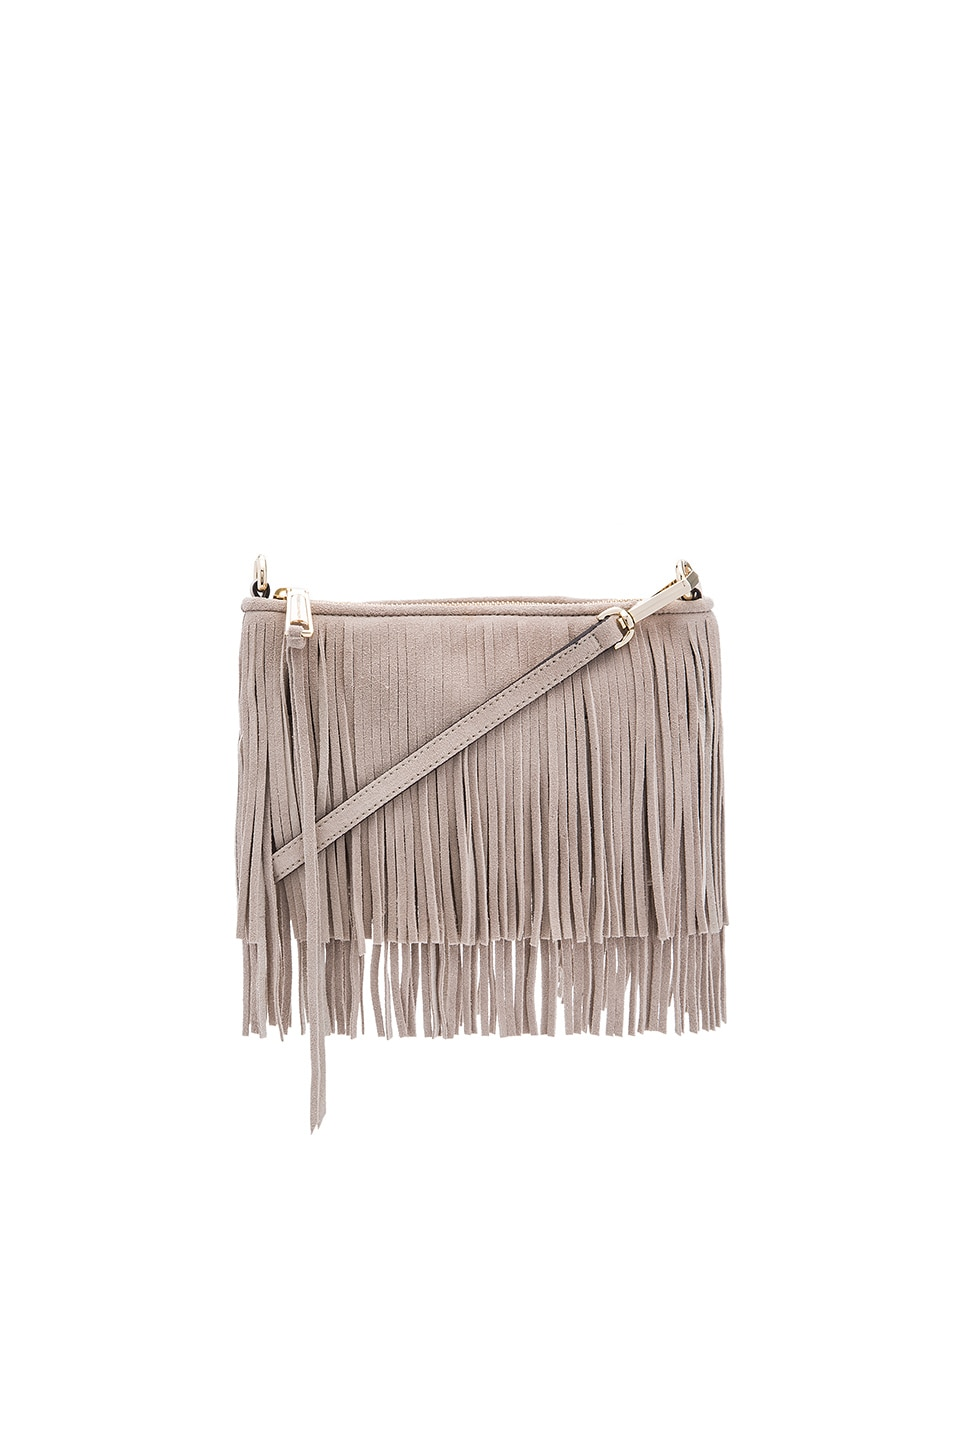 Rebecca Minkoff Suede Finn Crossbody Bag in Khaki